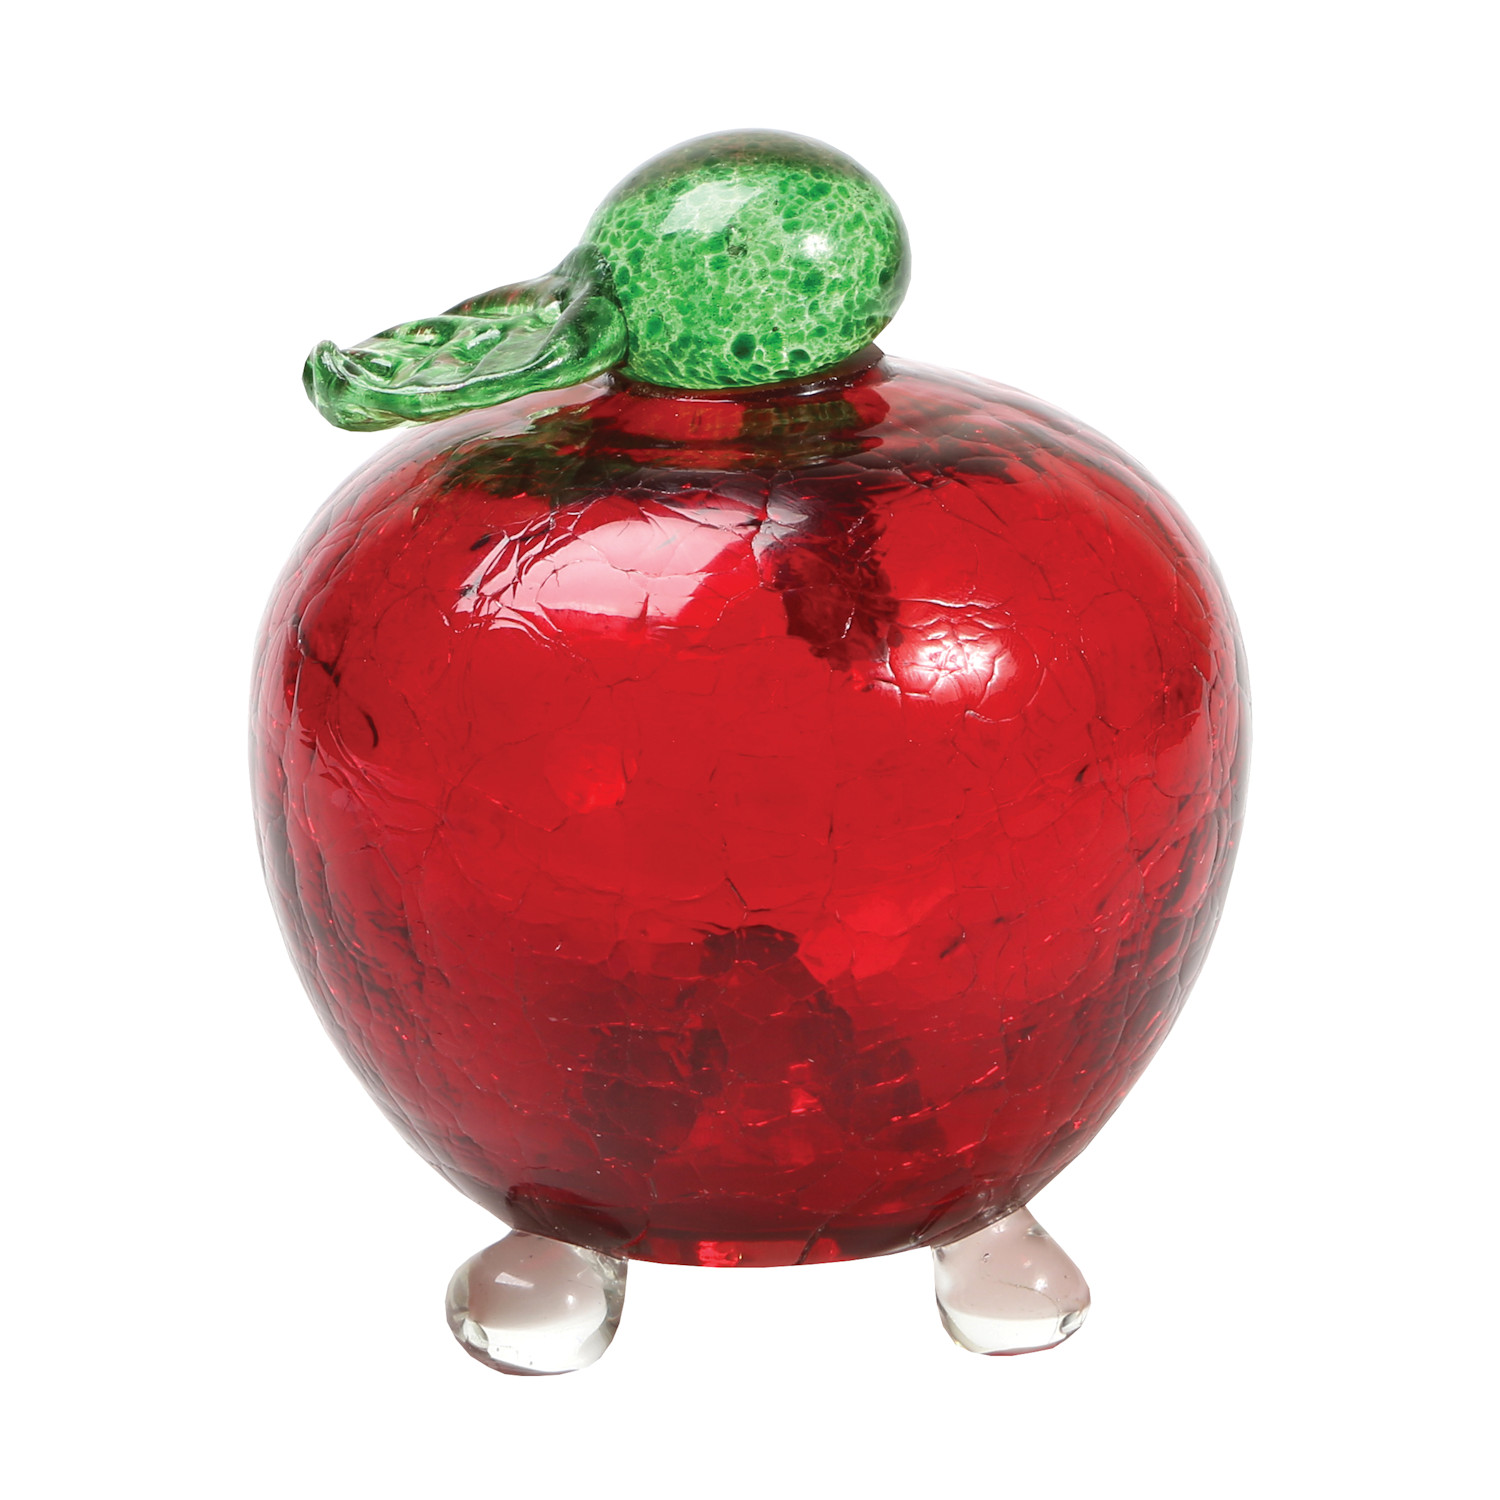 Apple Shaped Fruit Fly Trap - Crackle Glass Reusable Eco-Friendly